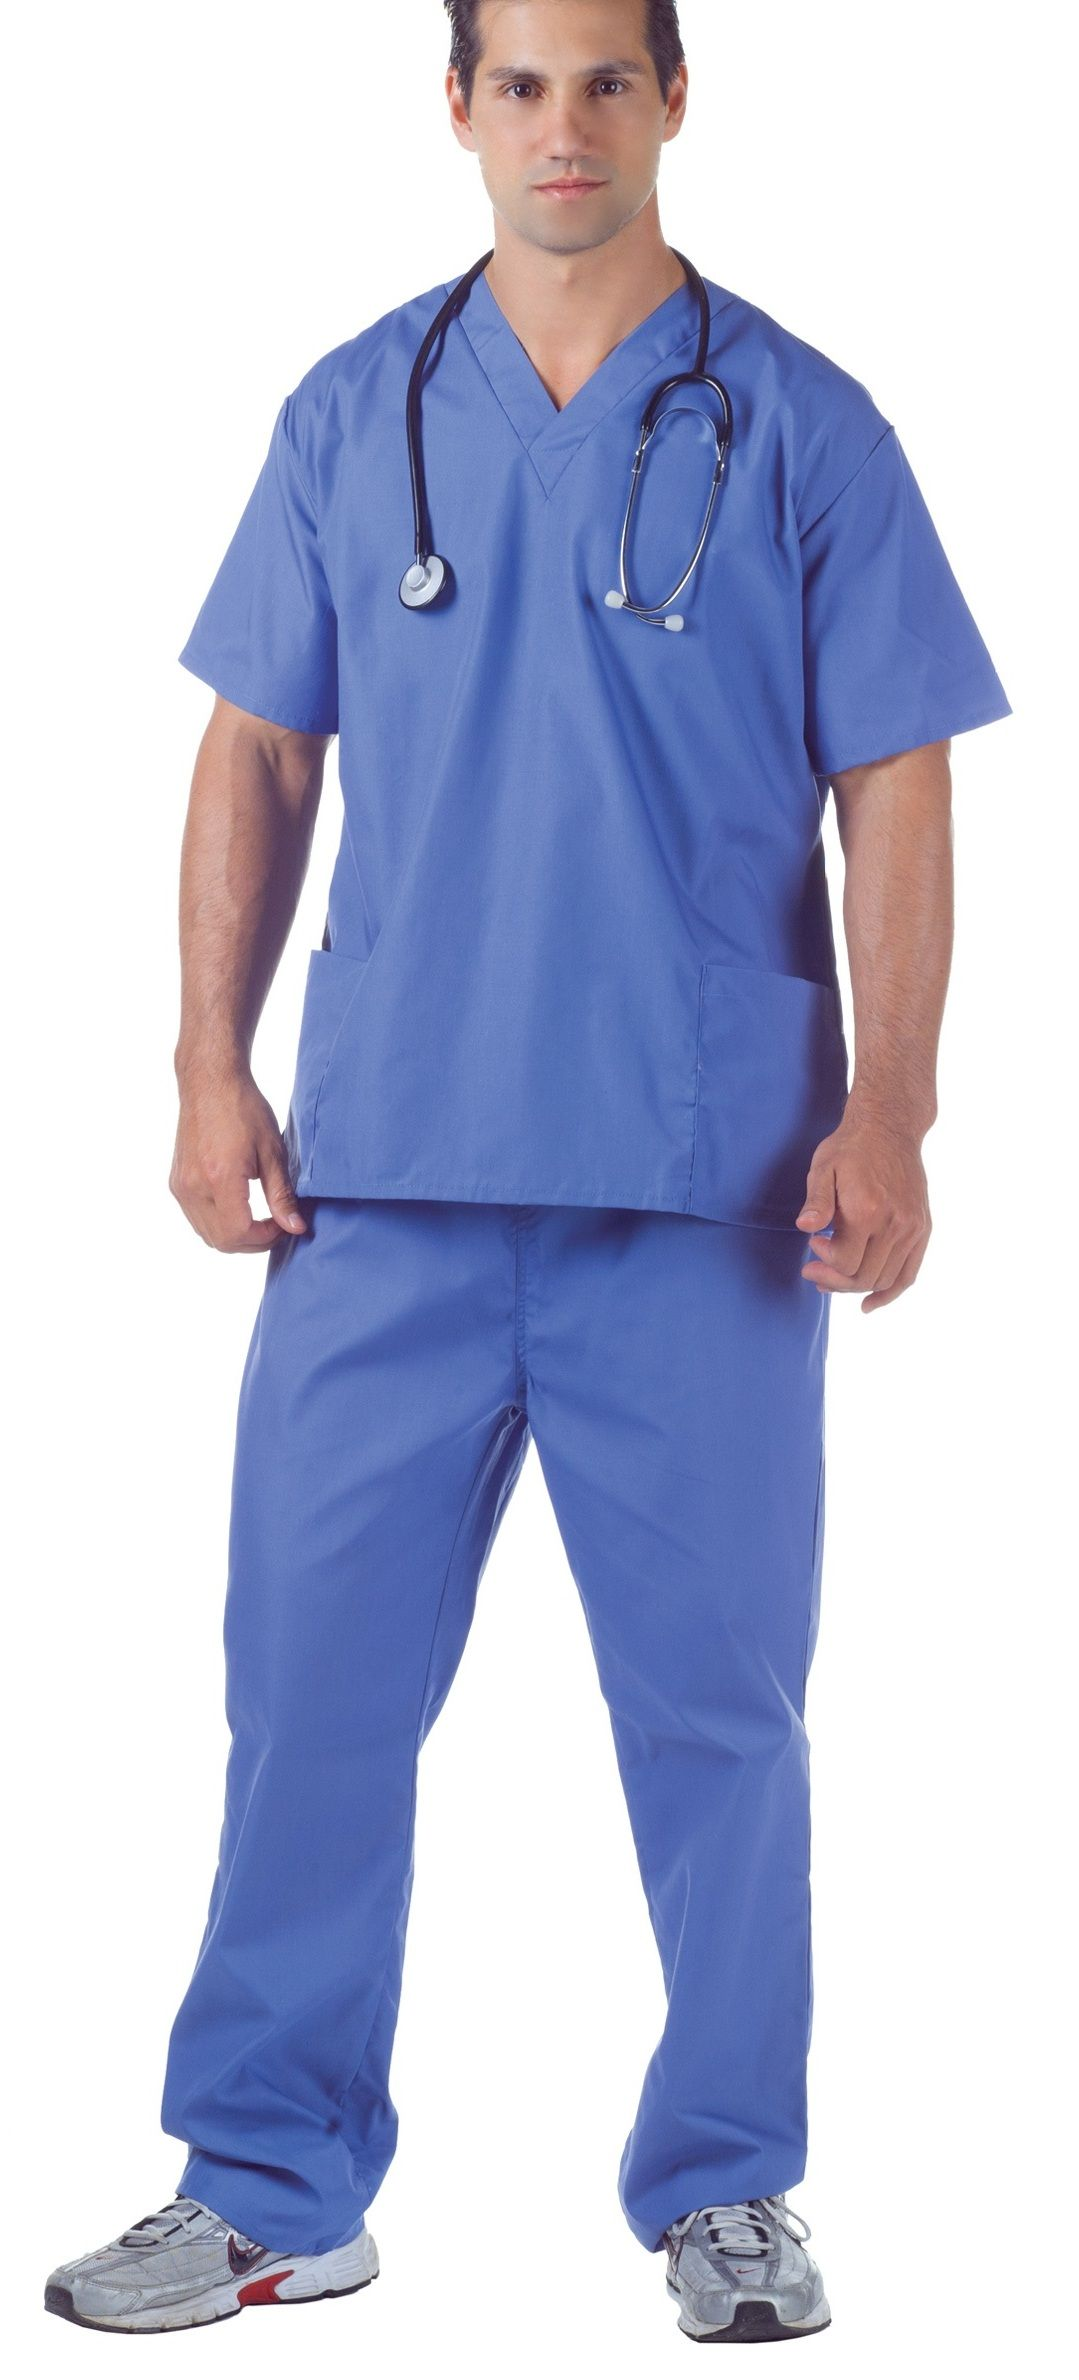 4a5d07d40c5ae Plus size costumes for men. Buy Blue Doctors scrub suit with top and bottom  Online - B2BMonk